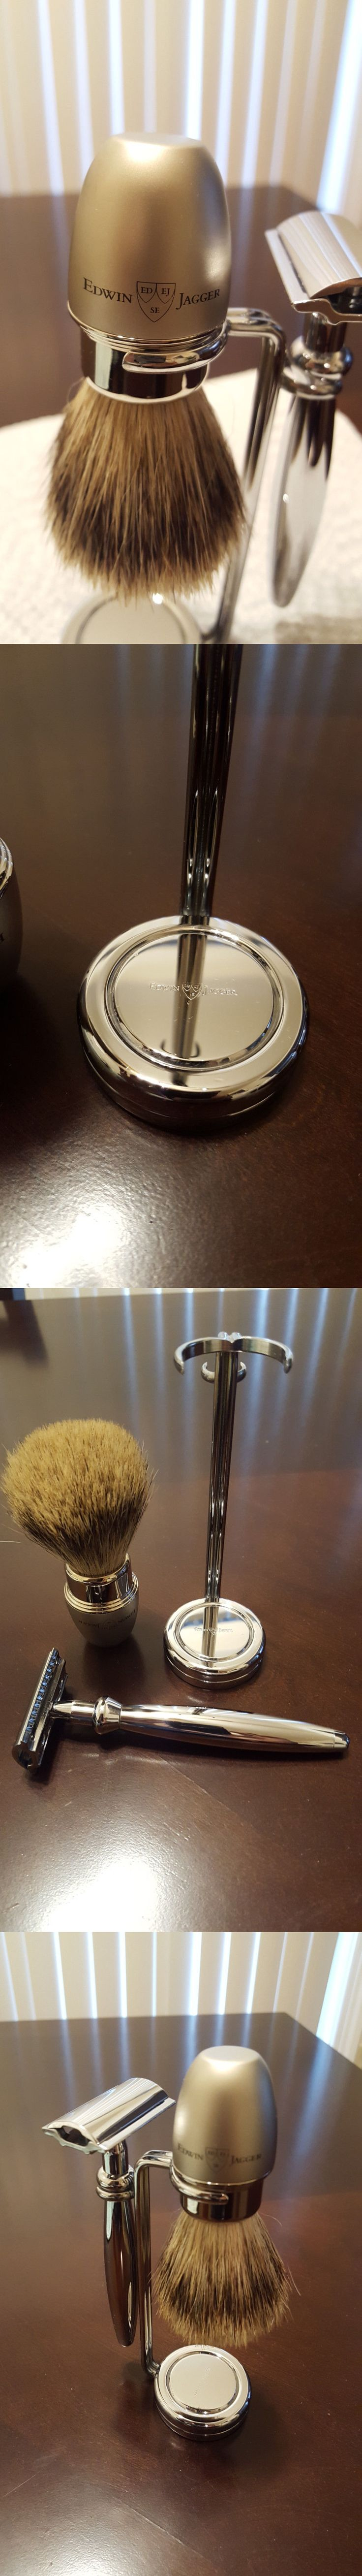 Shaving Brushes and Mugs: Edwin Jagger Shaving Brush, Double Edge Razor With Drip Stand -> BUY IT NOW ONLY: $89.95 on eBay!